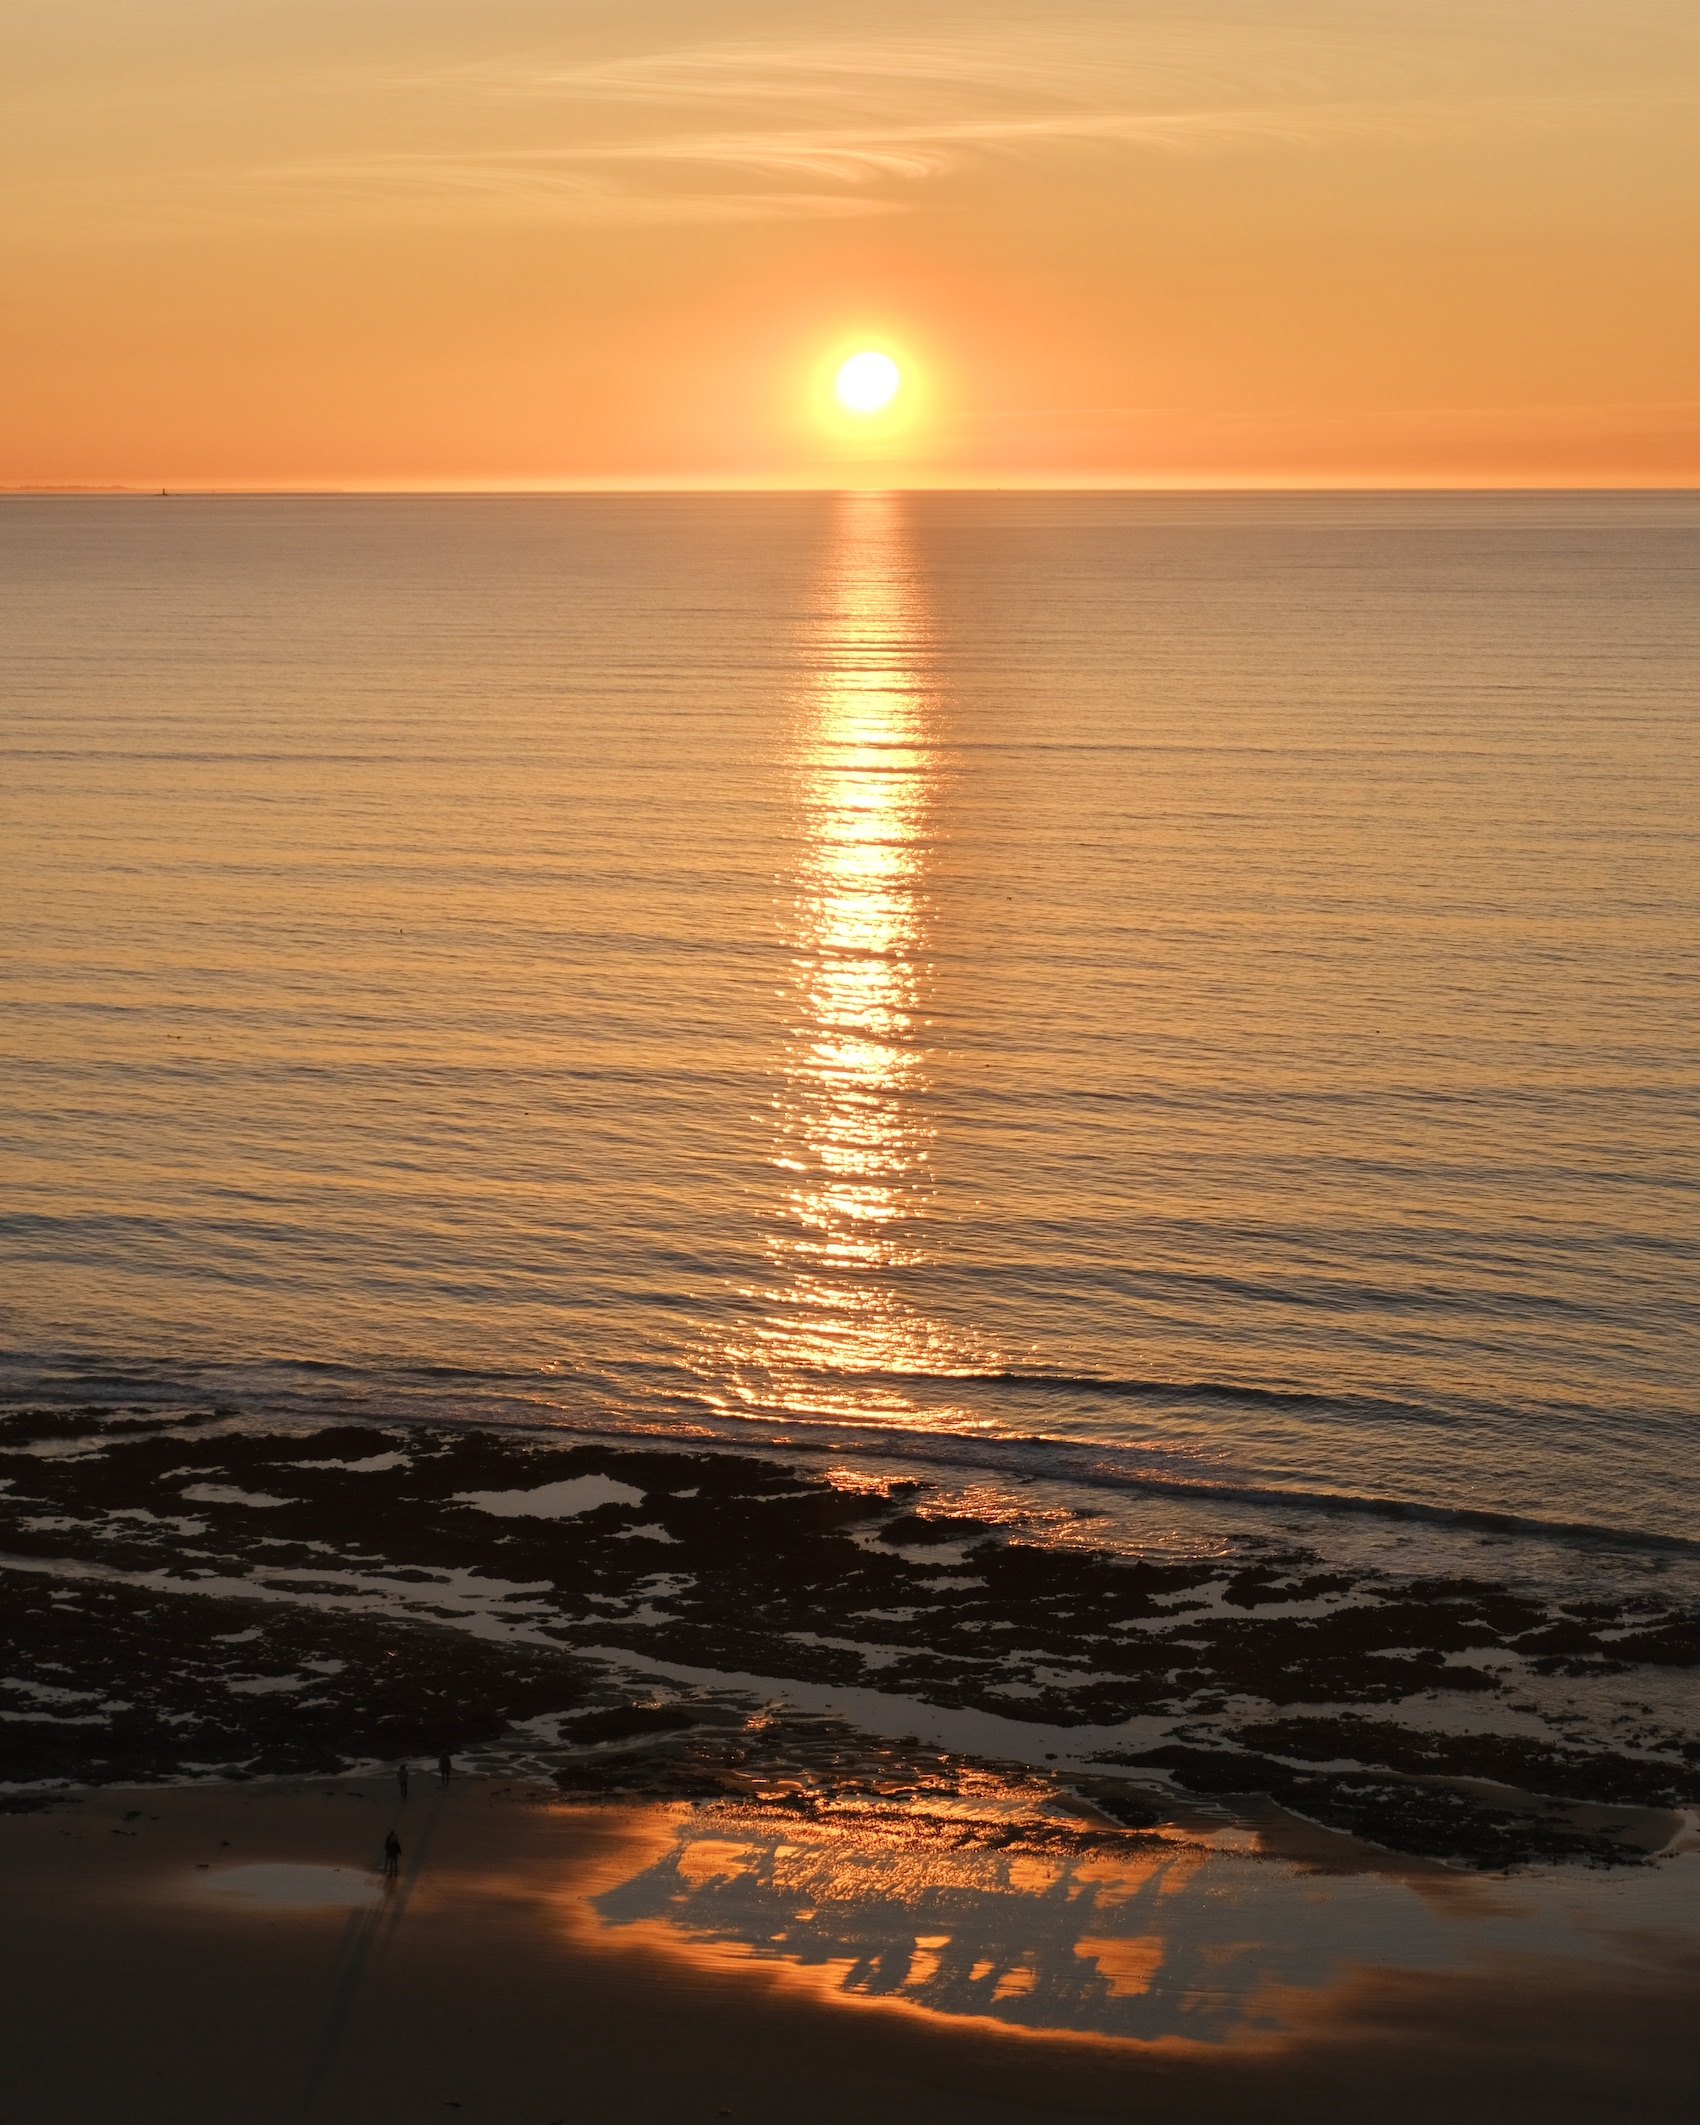 Sunset over the Normandy Beaches